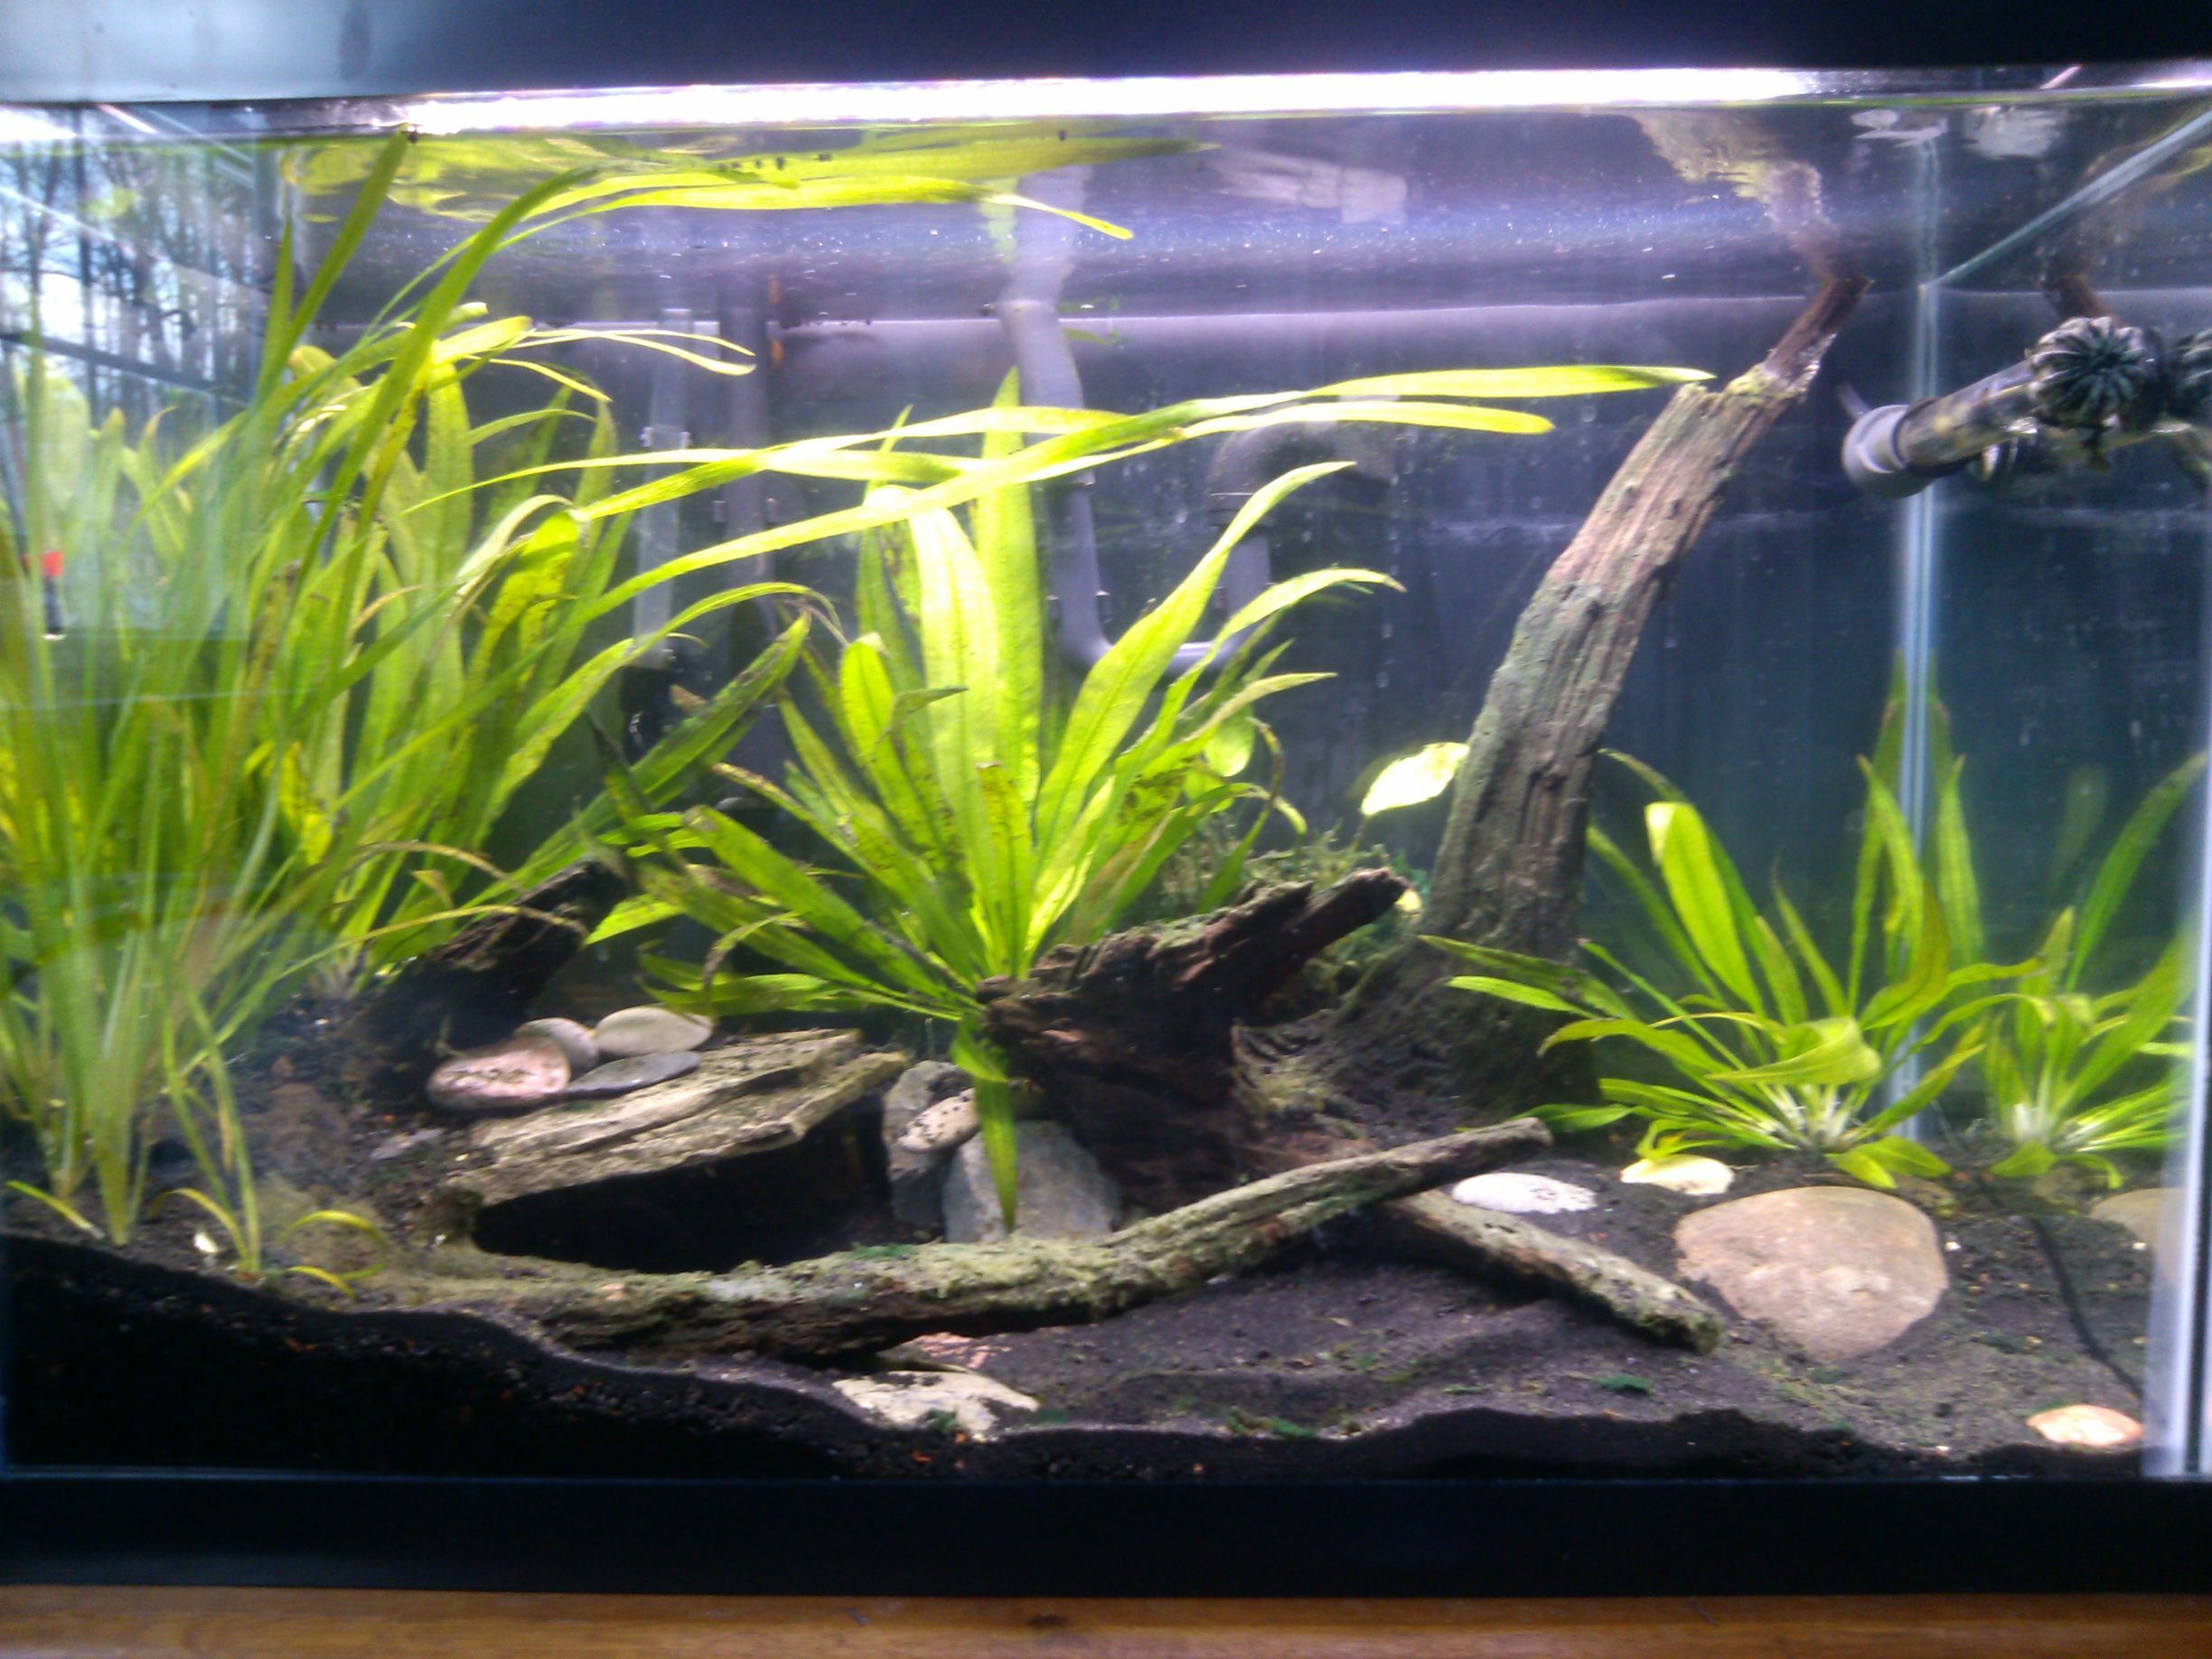 Very Natural Looking Like A Lakebed Dark Substrate Some Wood Stones Nothing Over The Top Aquascape Wood Stone Aquarium